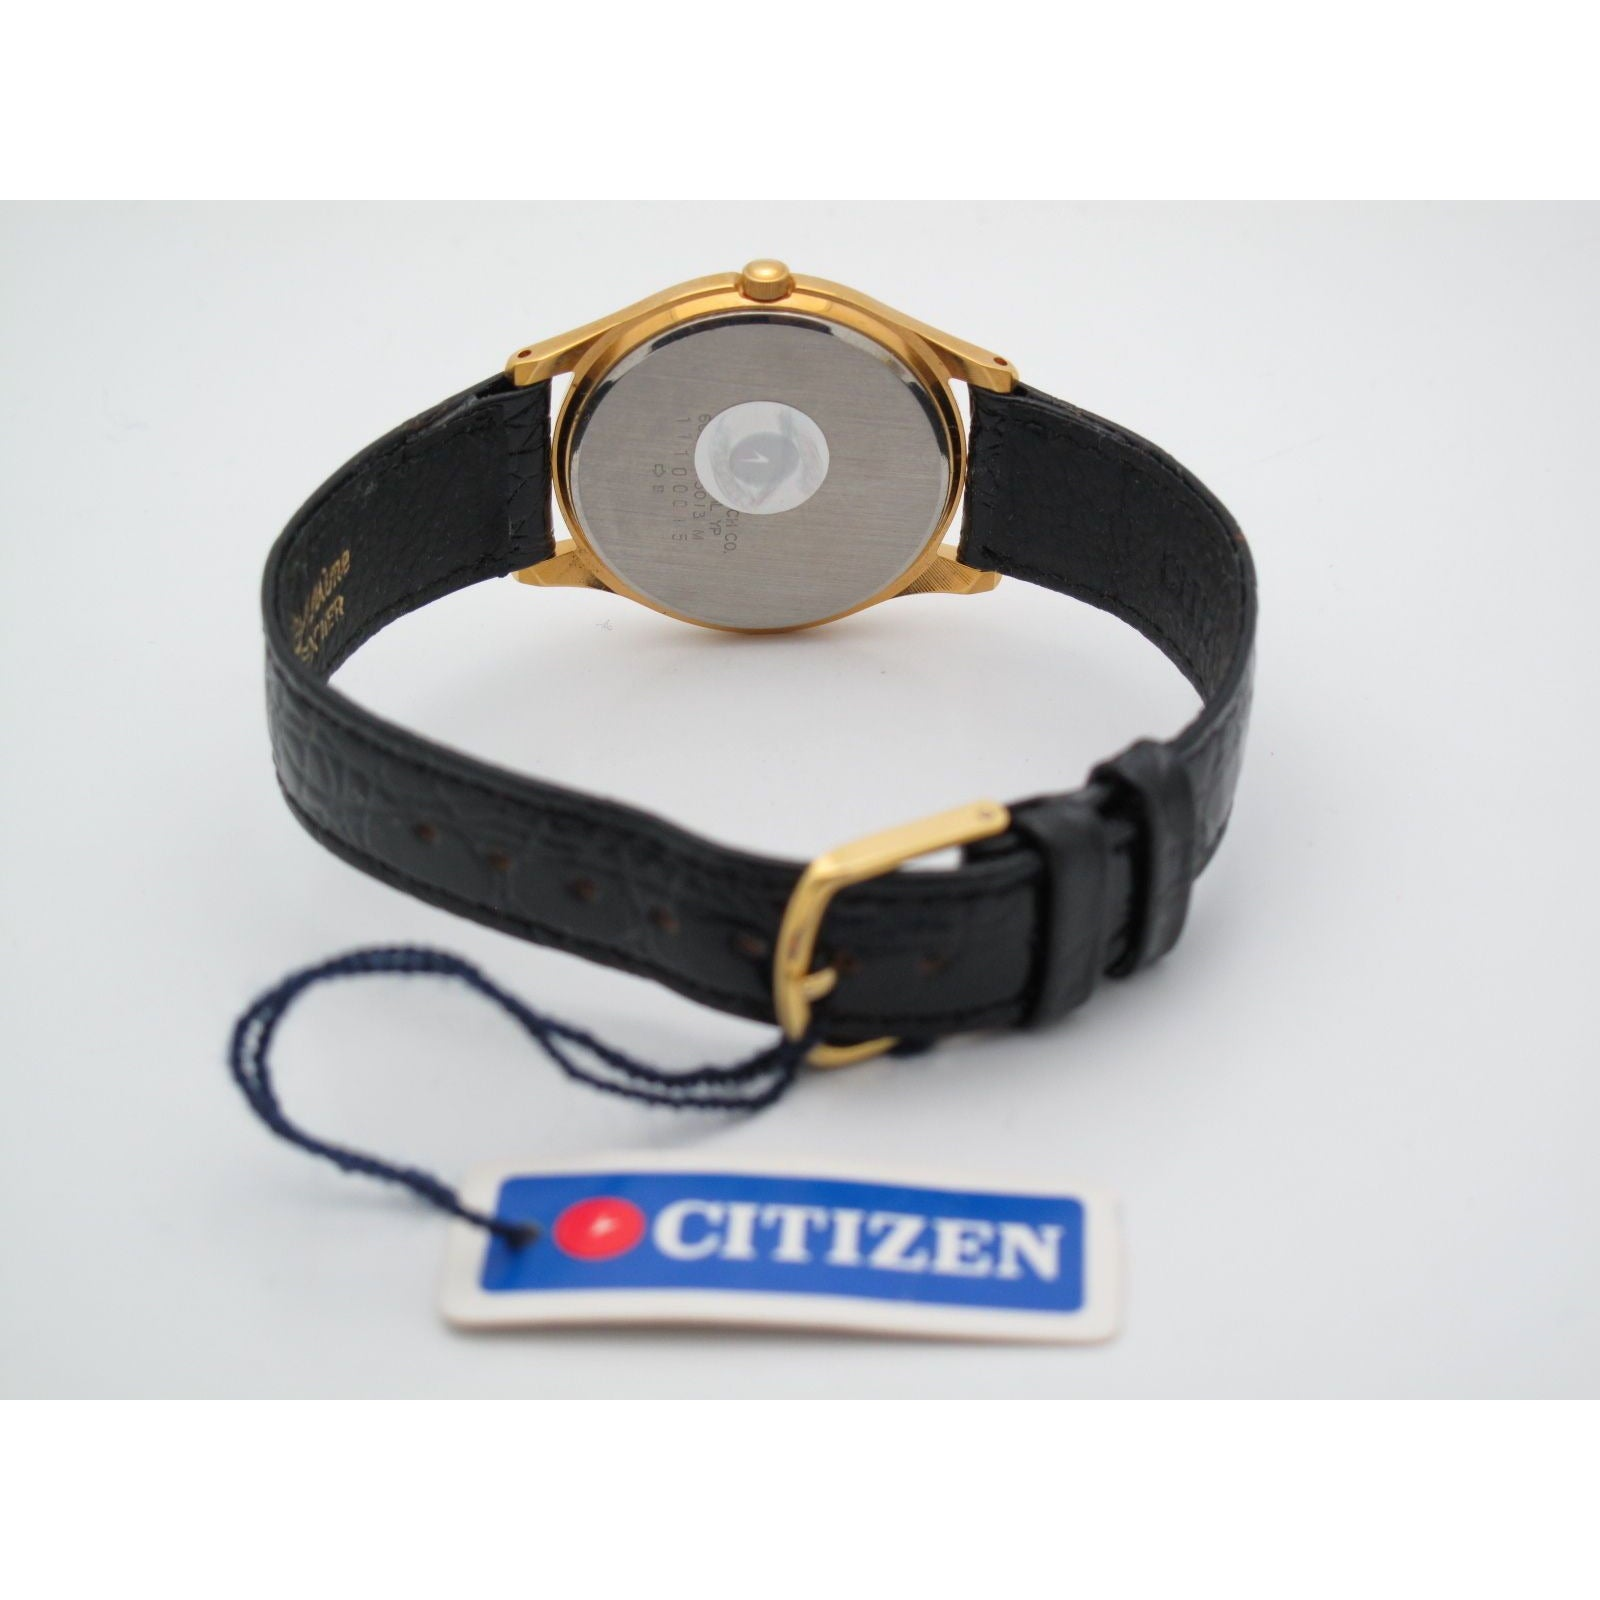 Citizen Men's Gold Stainless Steel Silver Dial Black Leather Band Watch 11100015